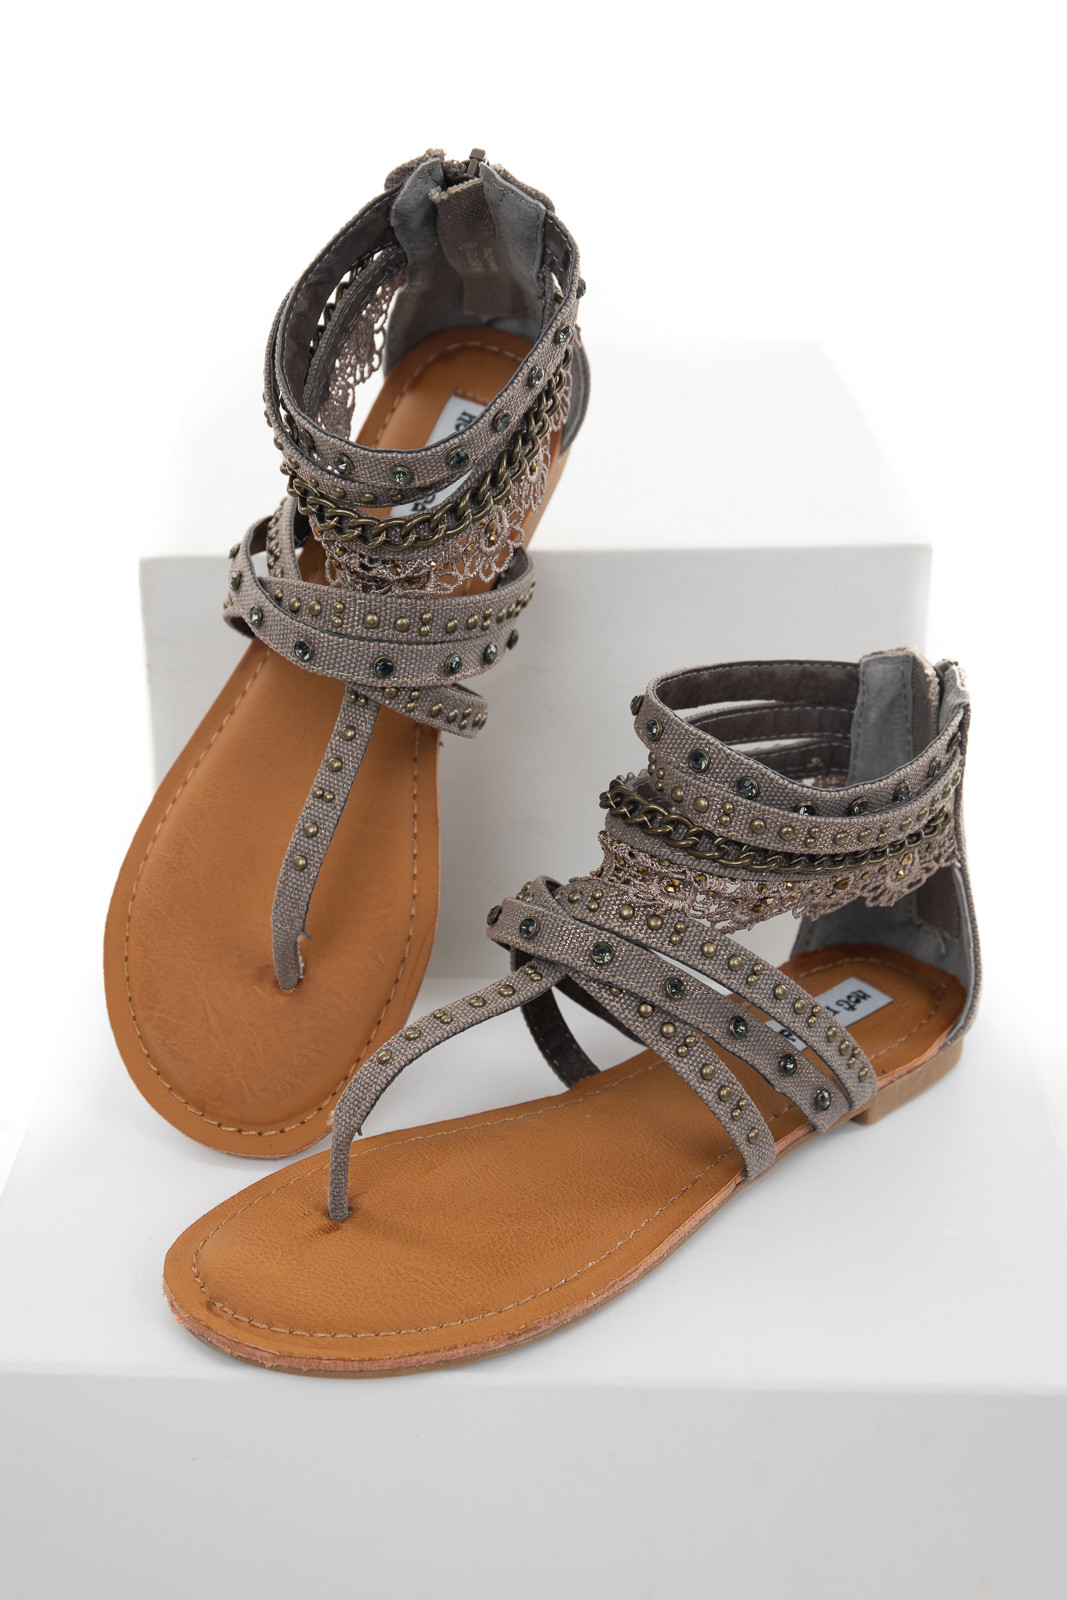 Stone Grey and Gold Strappy Flat Sandal with Embellishments